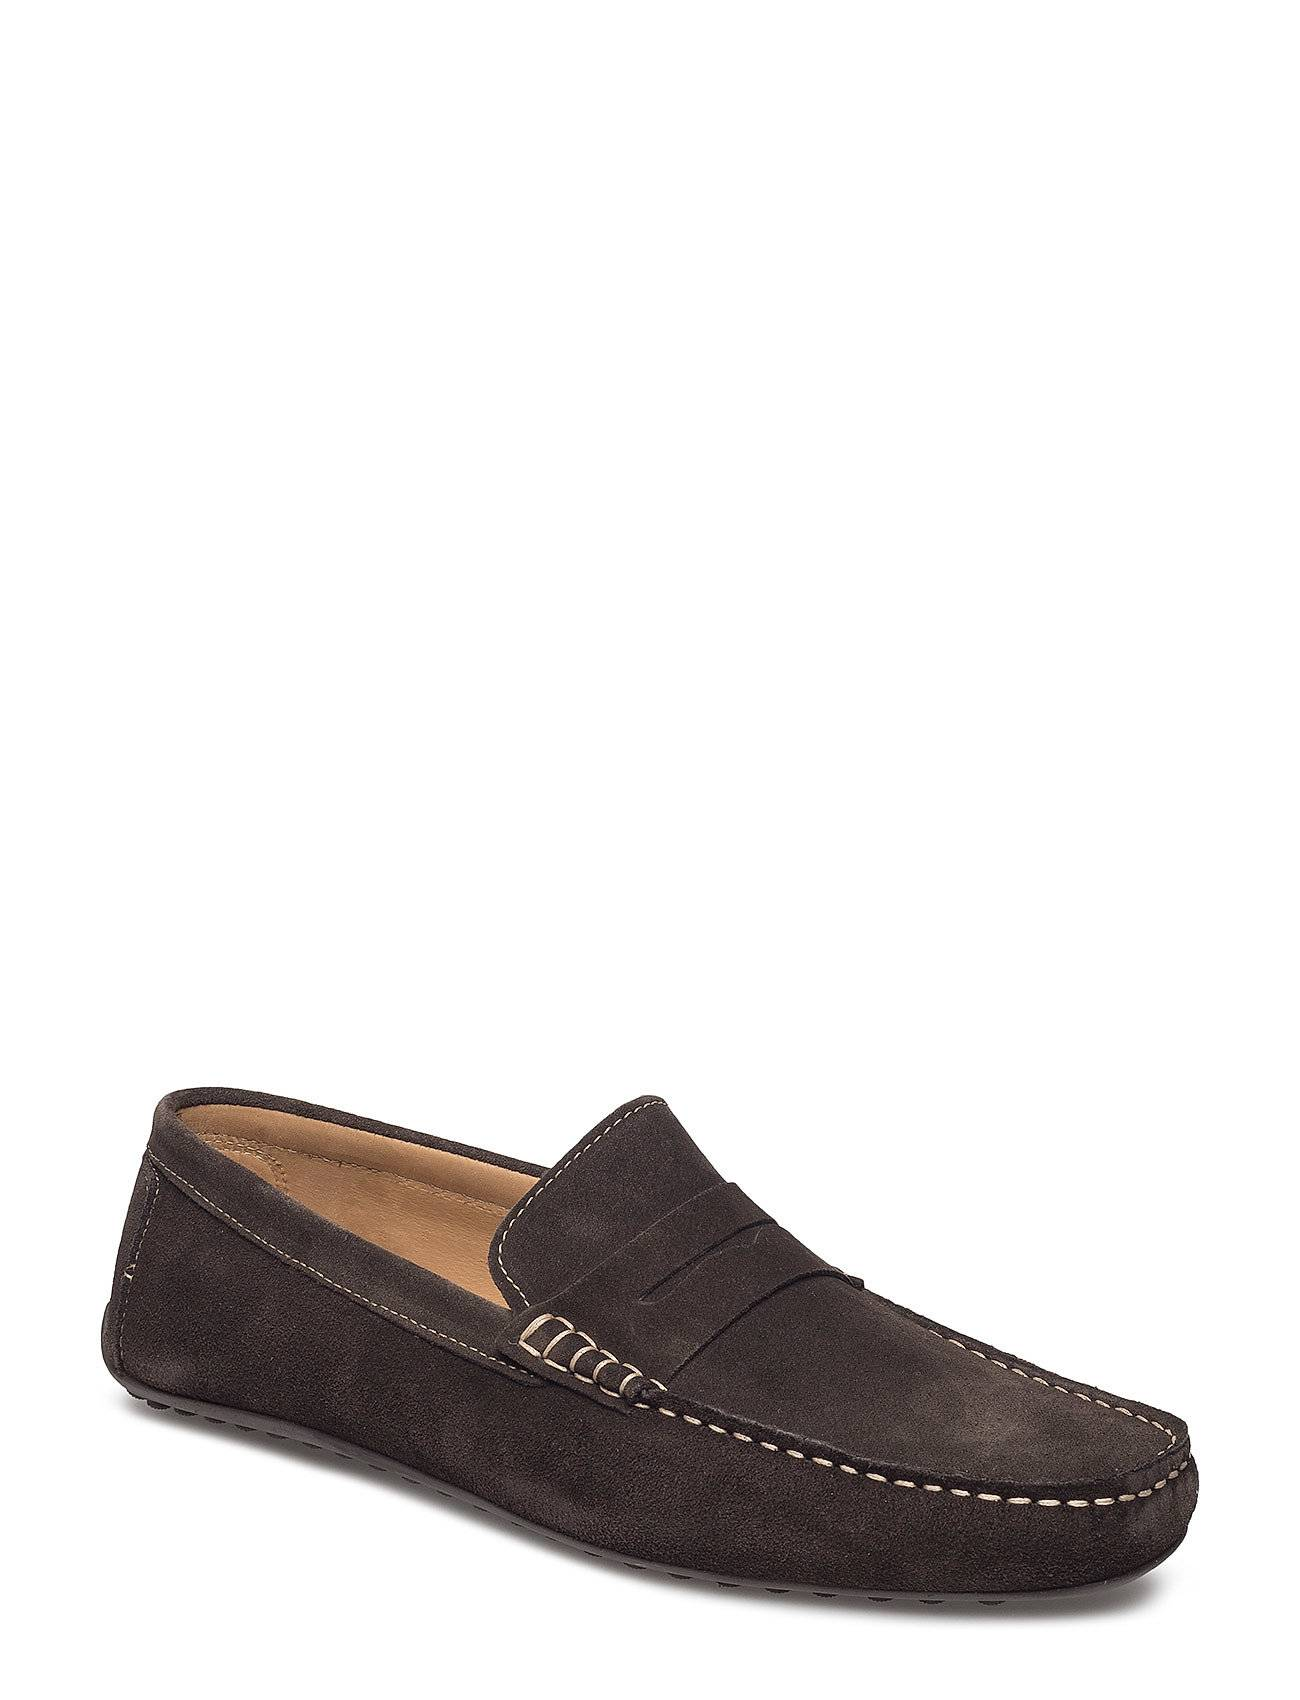 Oscar Jacobson Pierre Loafer